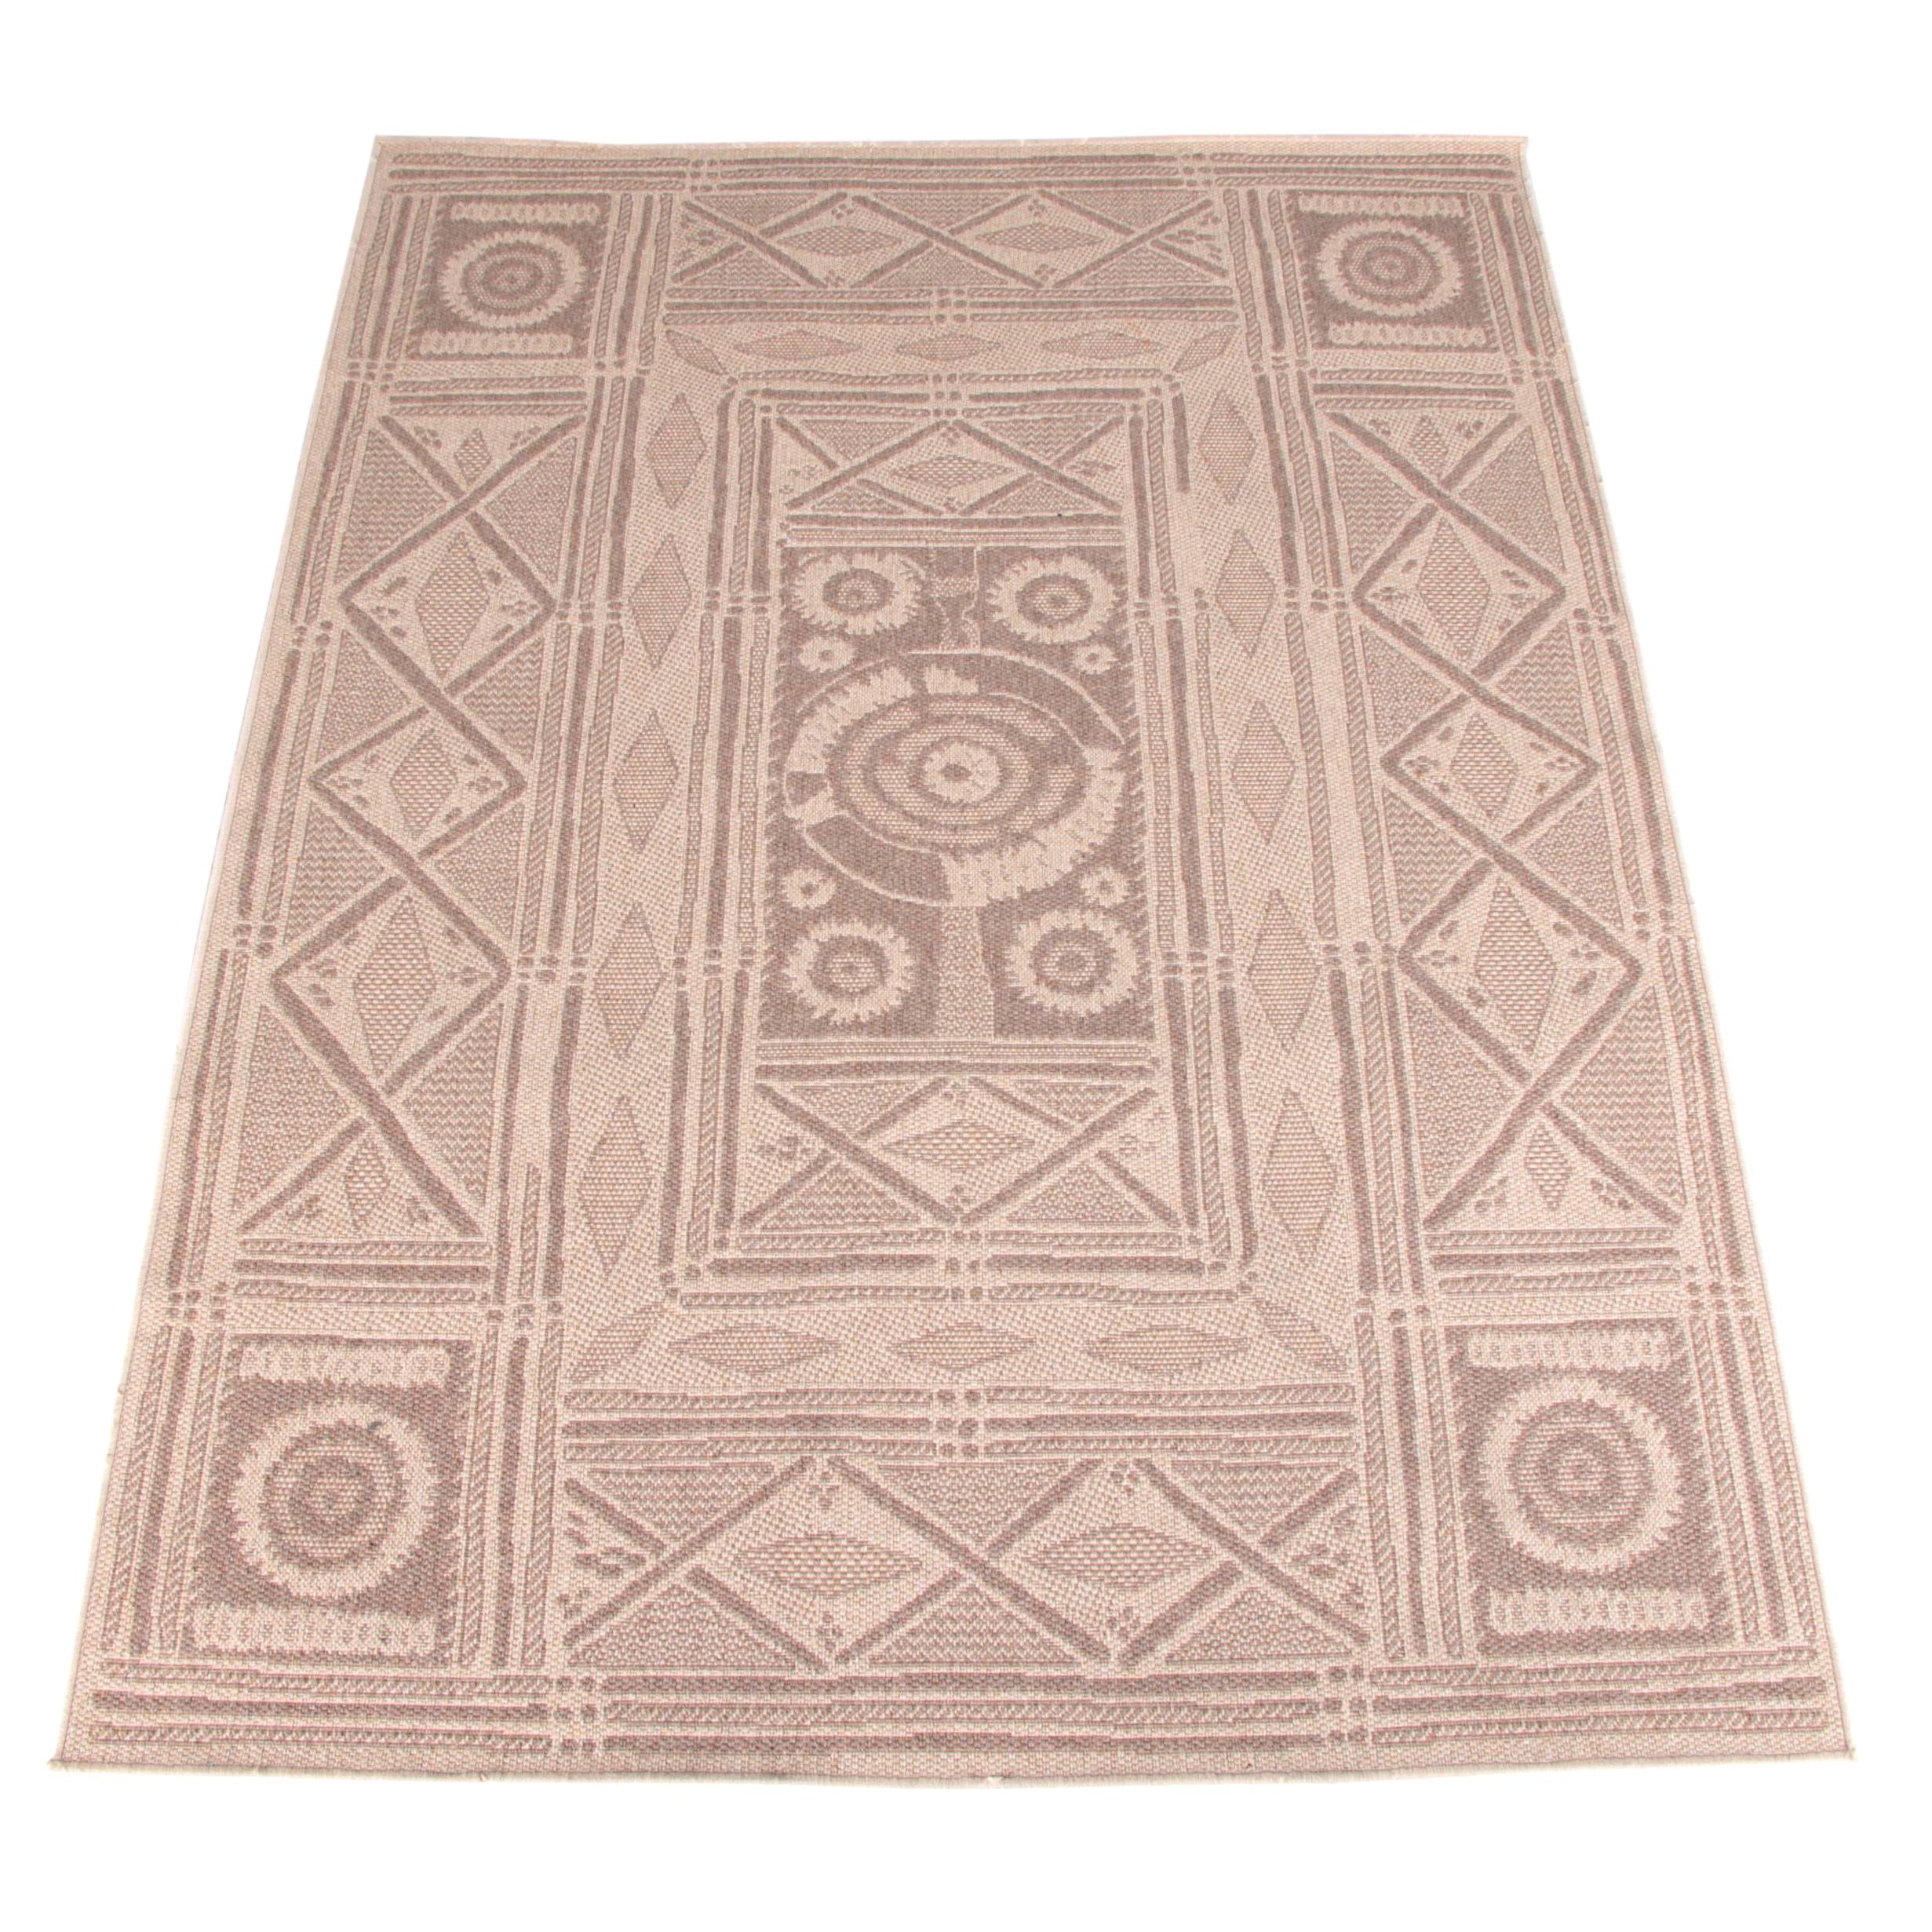 Power-Loomed Tribal-Style Area Rug